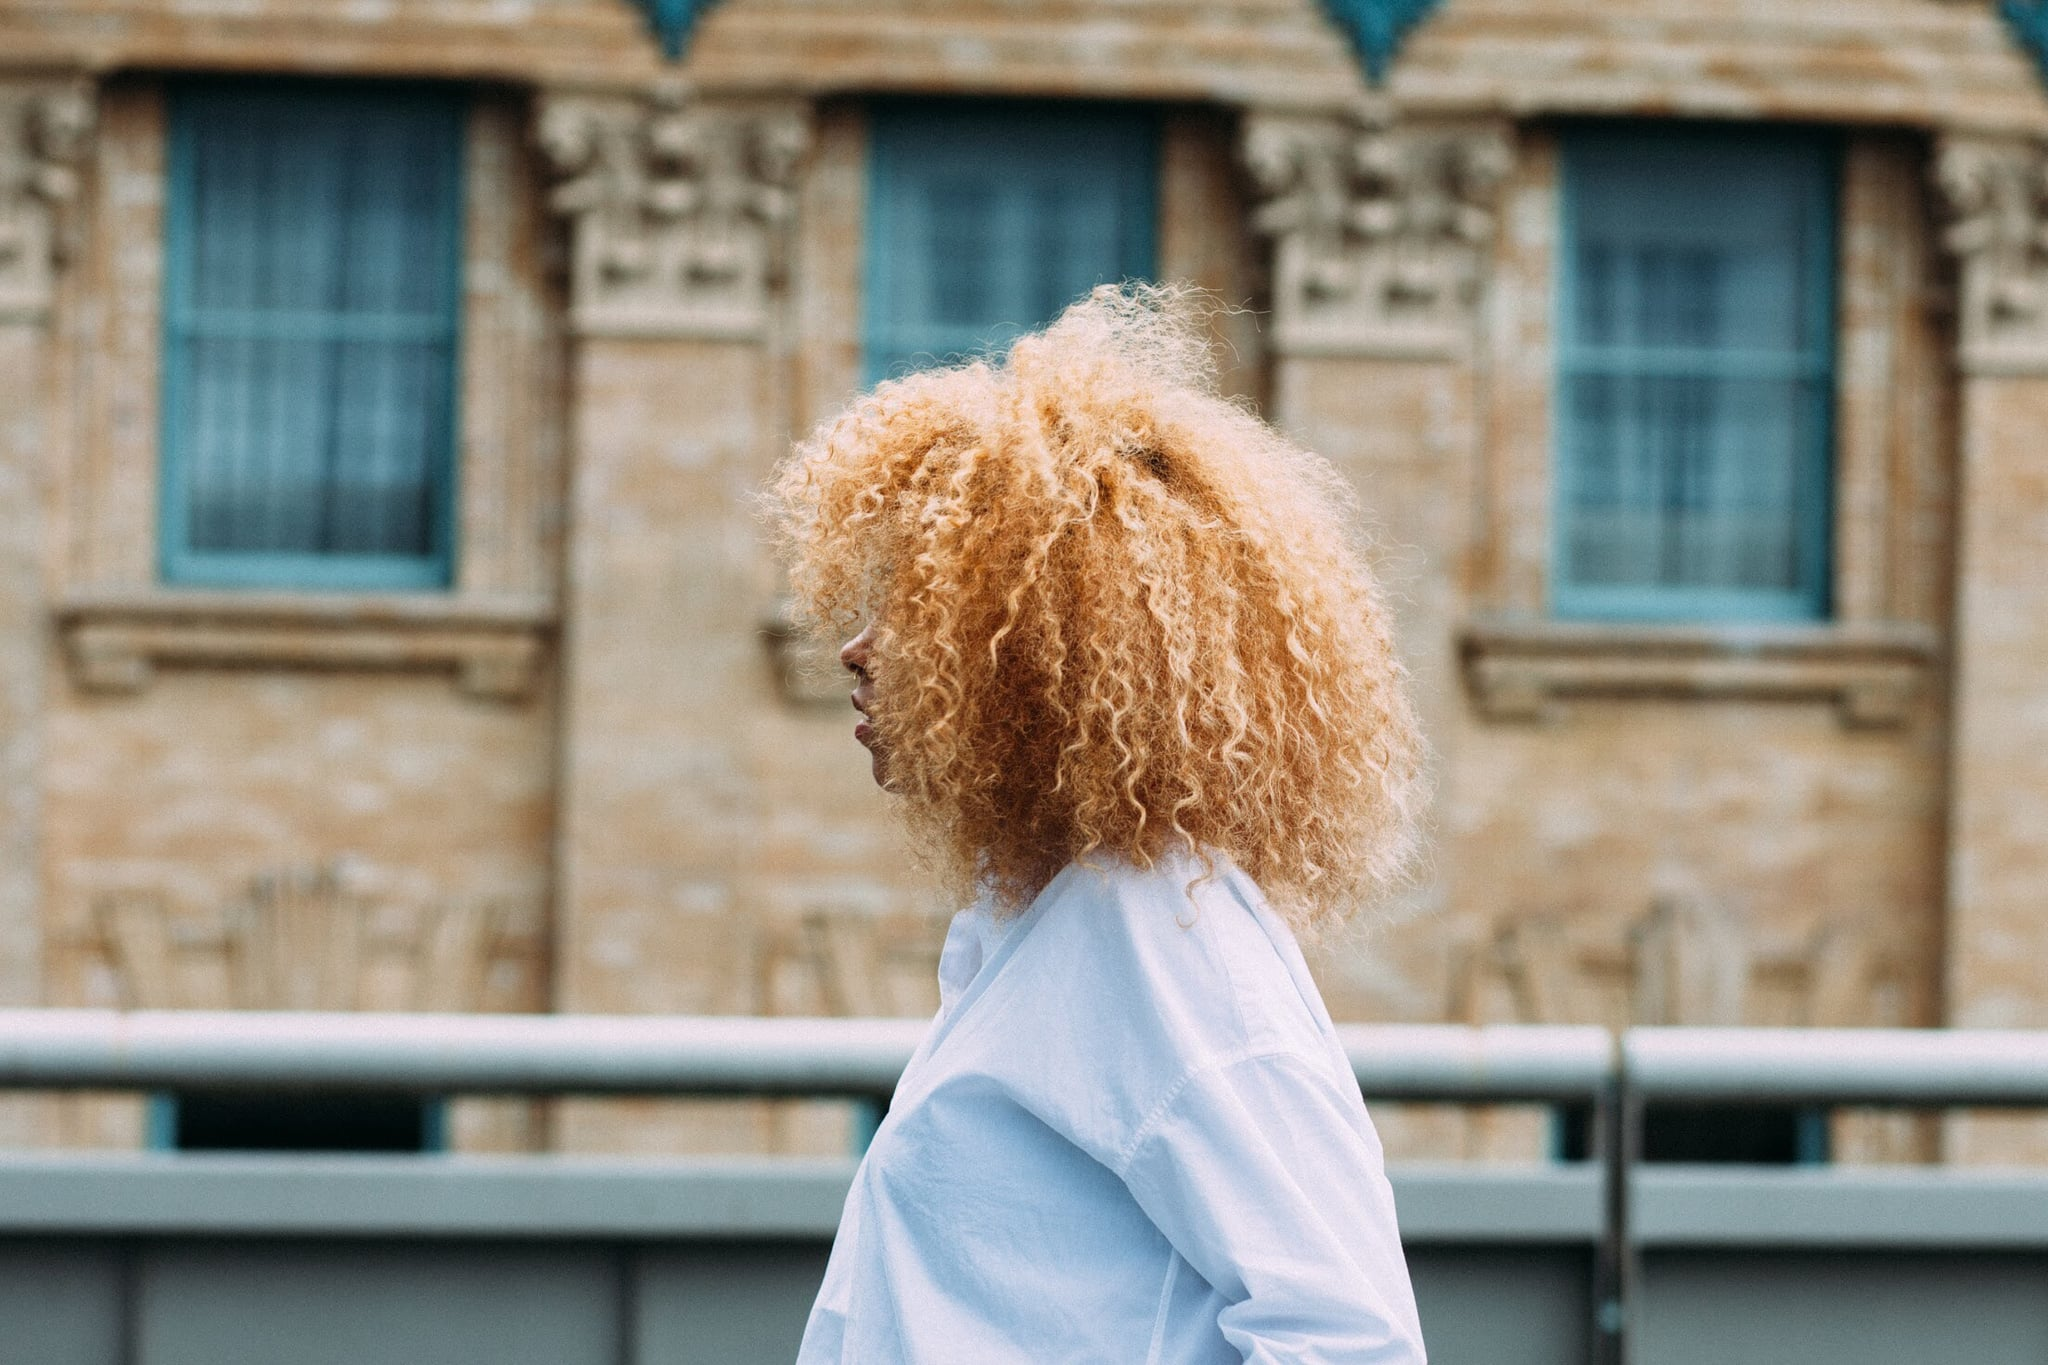 Have You Noticed a Change in Your Hair Texture? Here's Why That Happens